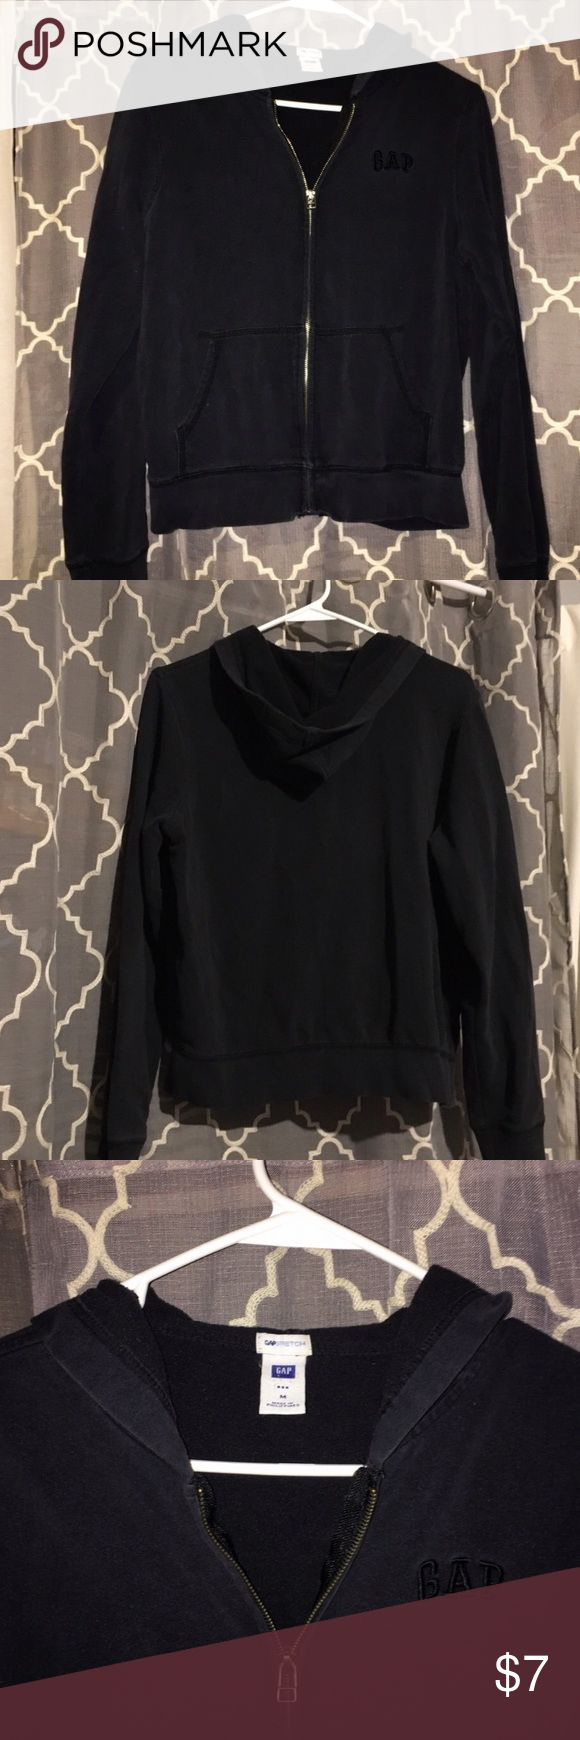 GAP jacket! ❤️ Size medium GAP hoodie jacket. Previously loved but in good condition. GAP Jackets & Coats